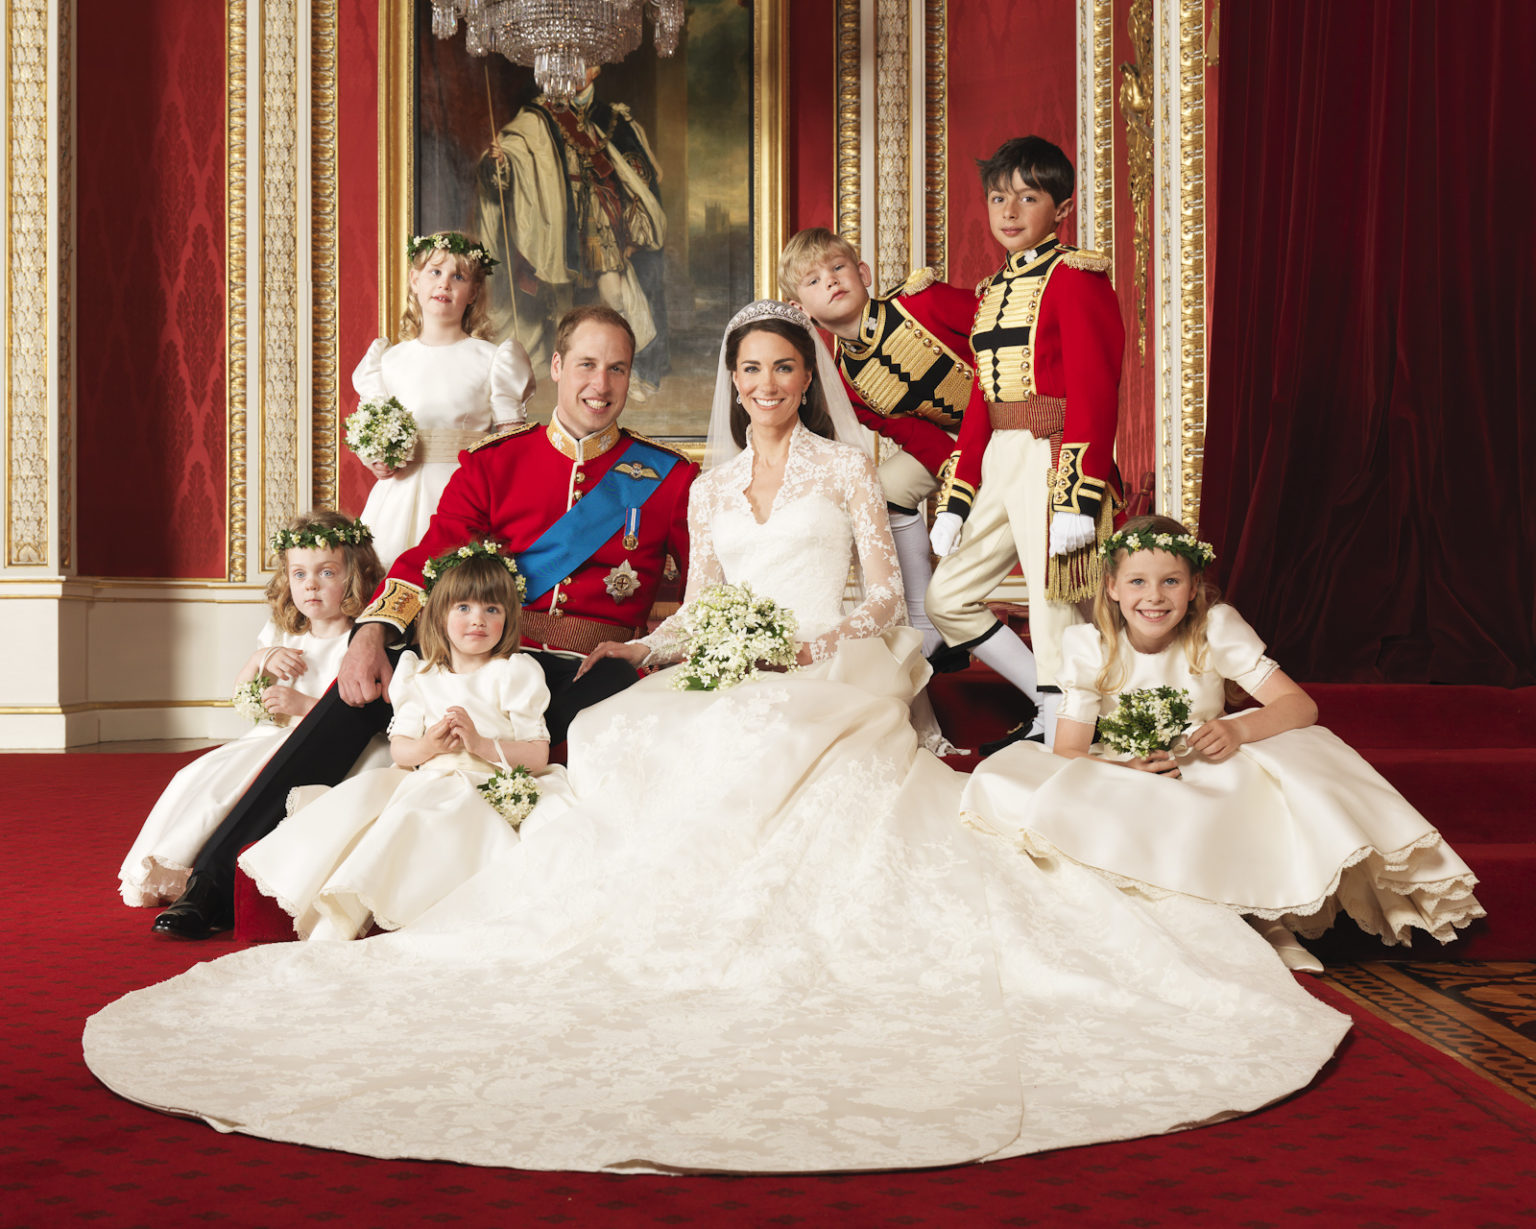 Official Wedding picture of The Duke and Duchess of Cambridge's wedding